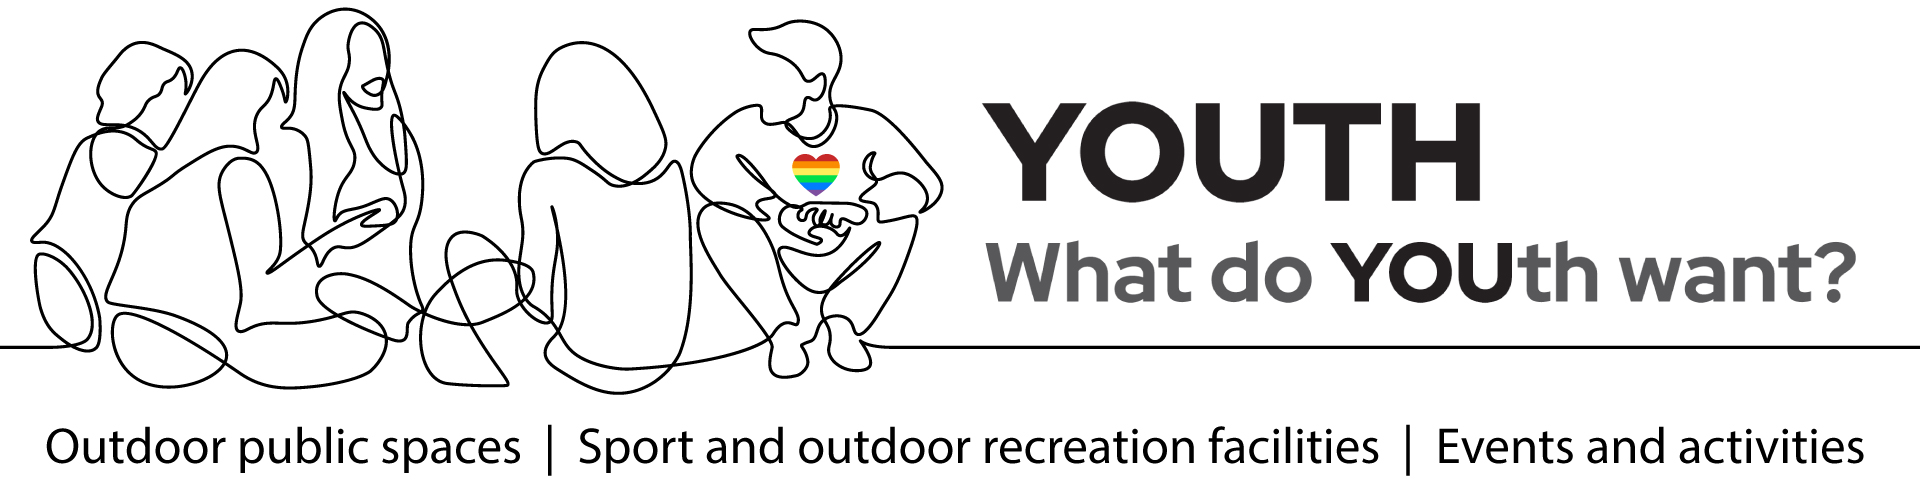 YOUTH - What do YOUth want? | Outdoor public spaces | Sport and outdoor recreation facilities | Events and activities